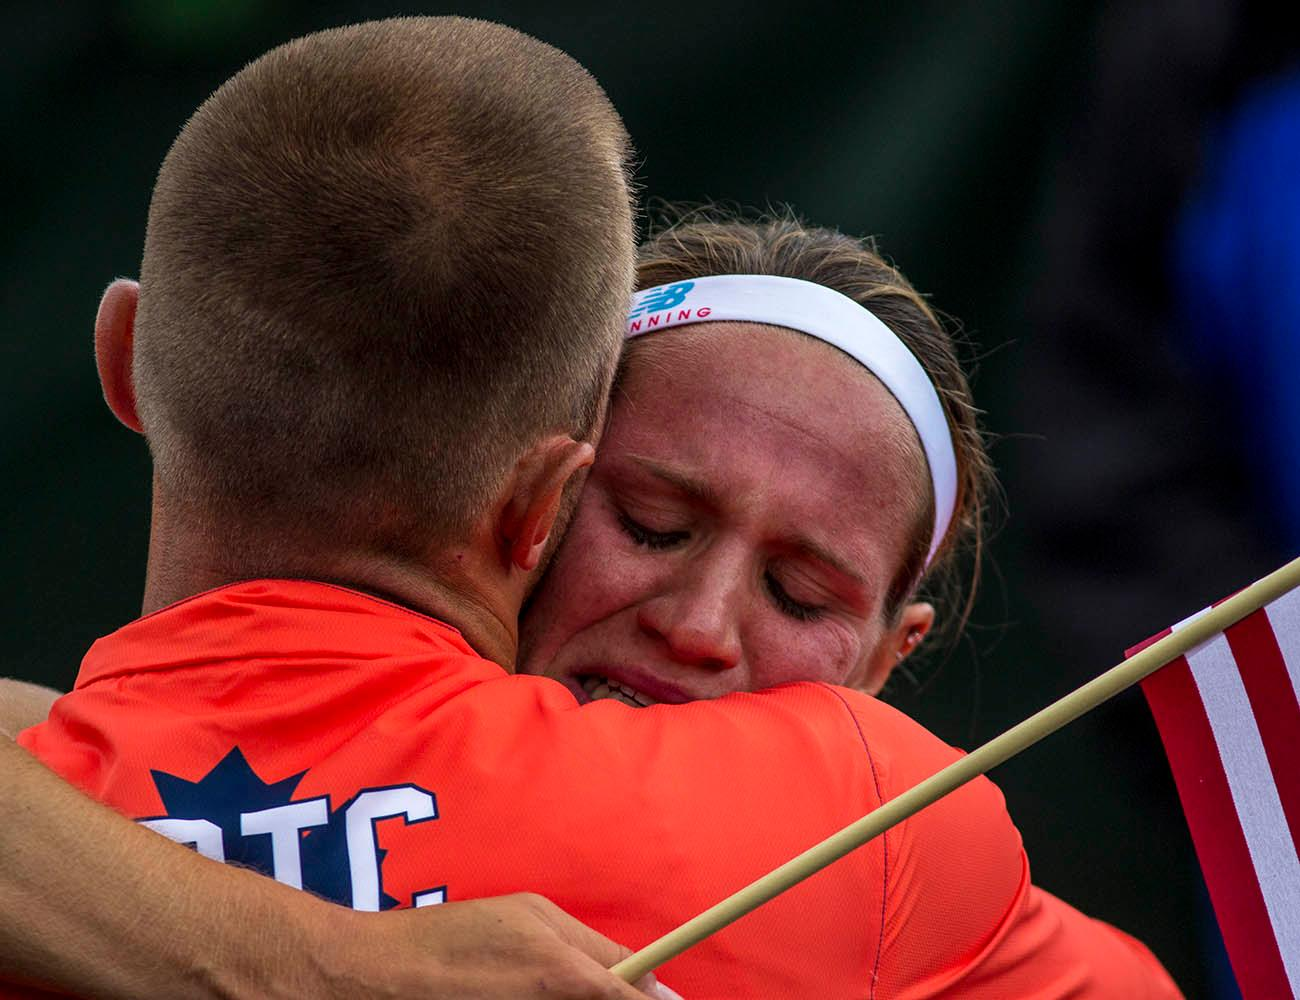 Central Park TC�s Heather Miller-Koch hugs a teammate after qualifying for the Rio Olympics in the Women�s Heptathlon. Miller-Koch finished second with 6,423 points. Day 10 of the U.S. Track and Field Trials concluded Sunday at Hayward Field in Eugene, Ore. The competition lasted July 1 through July 10. Photo by Amanda Butt